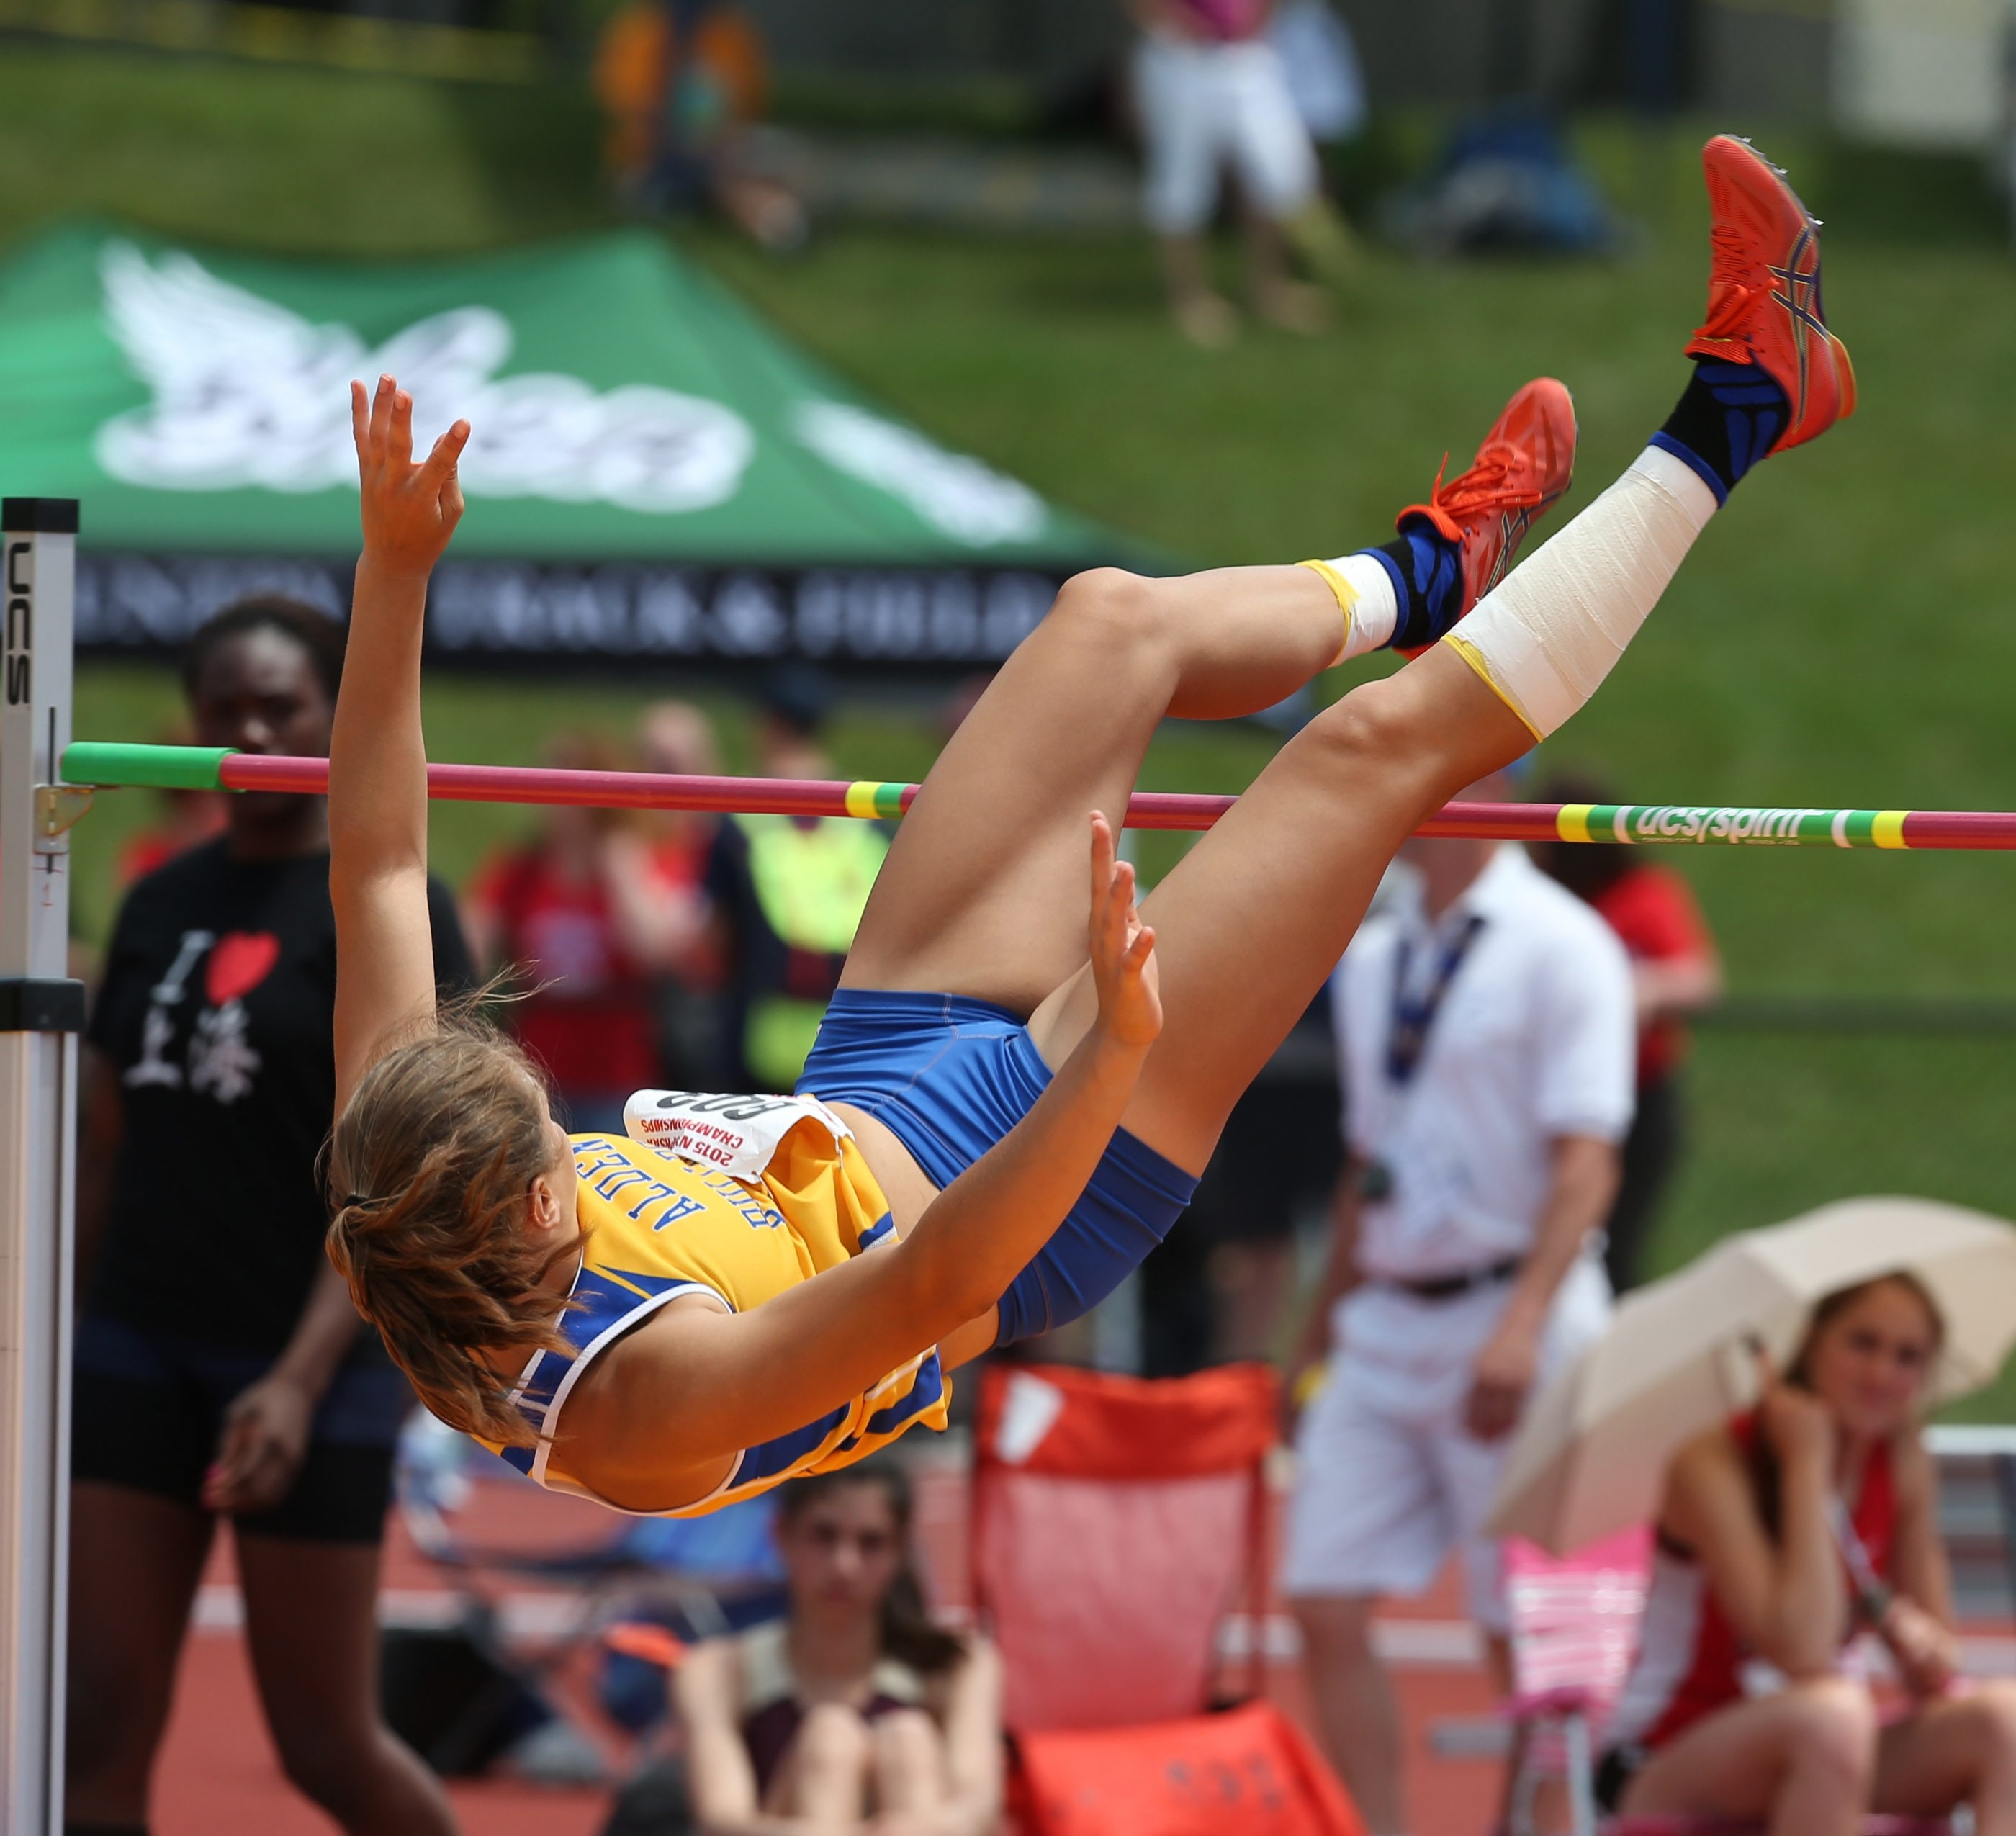 Hailey Rospierski of Alden competes in the high jump at the state championships in Albany last June.